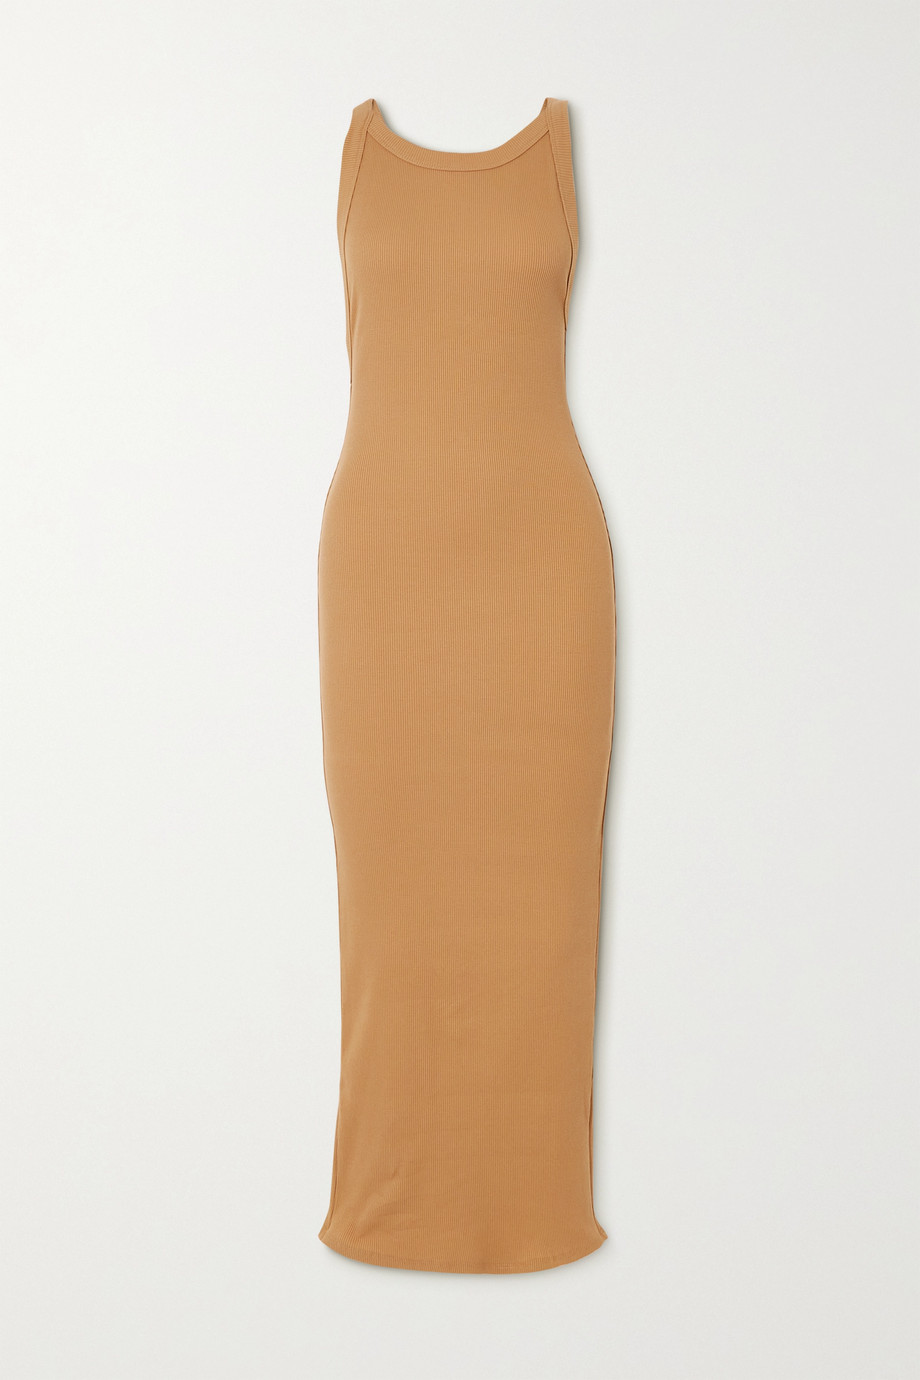 THE LINE BY K Maribel open-back ribbed stretch-cotton jersey midi dress